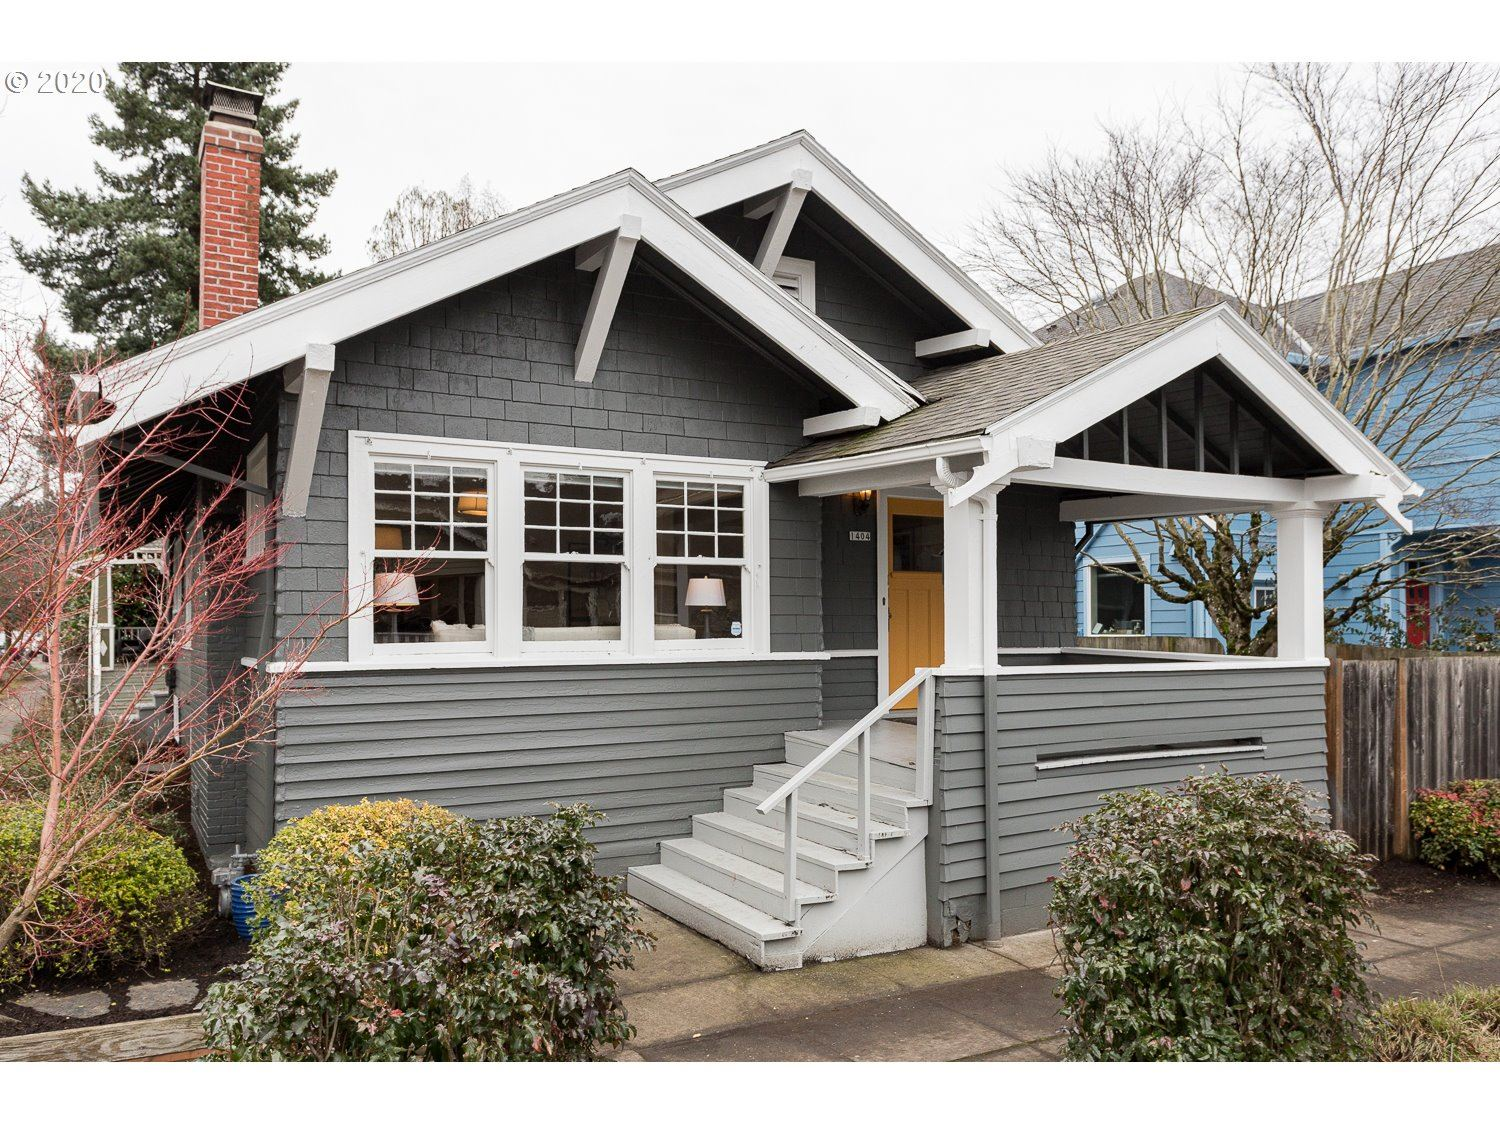 1404 SE 44TH AVE, Portland, OR 97215 - MLS#: 20463016